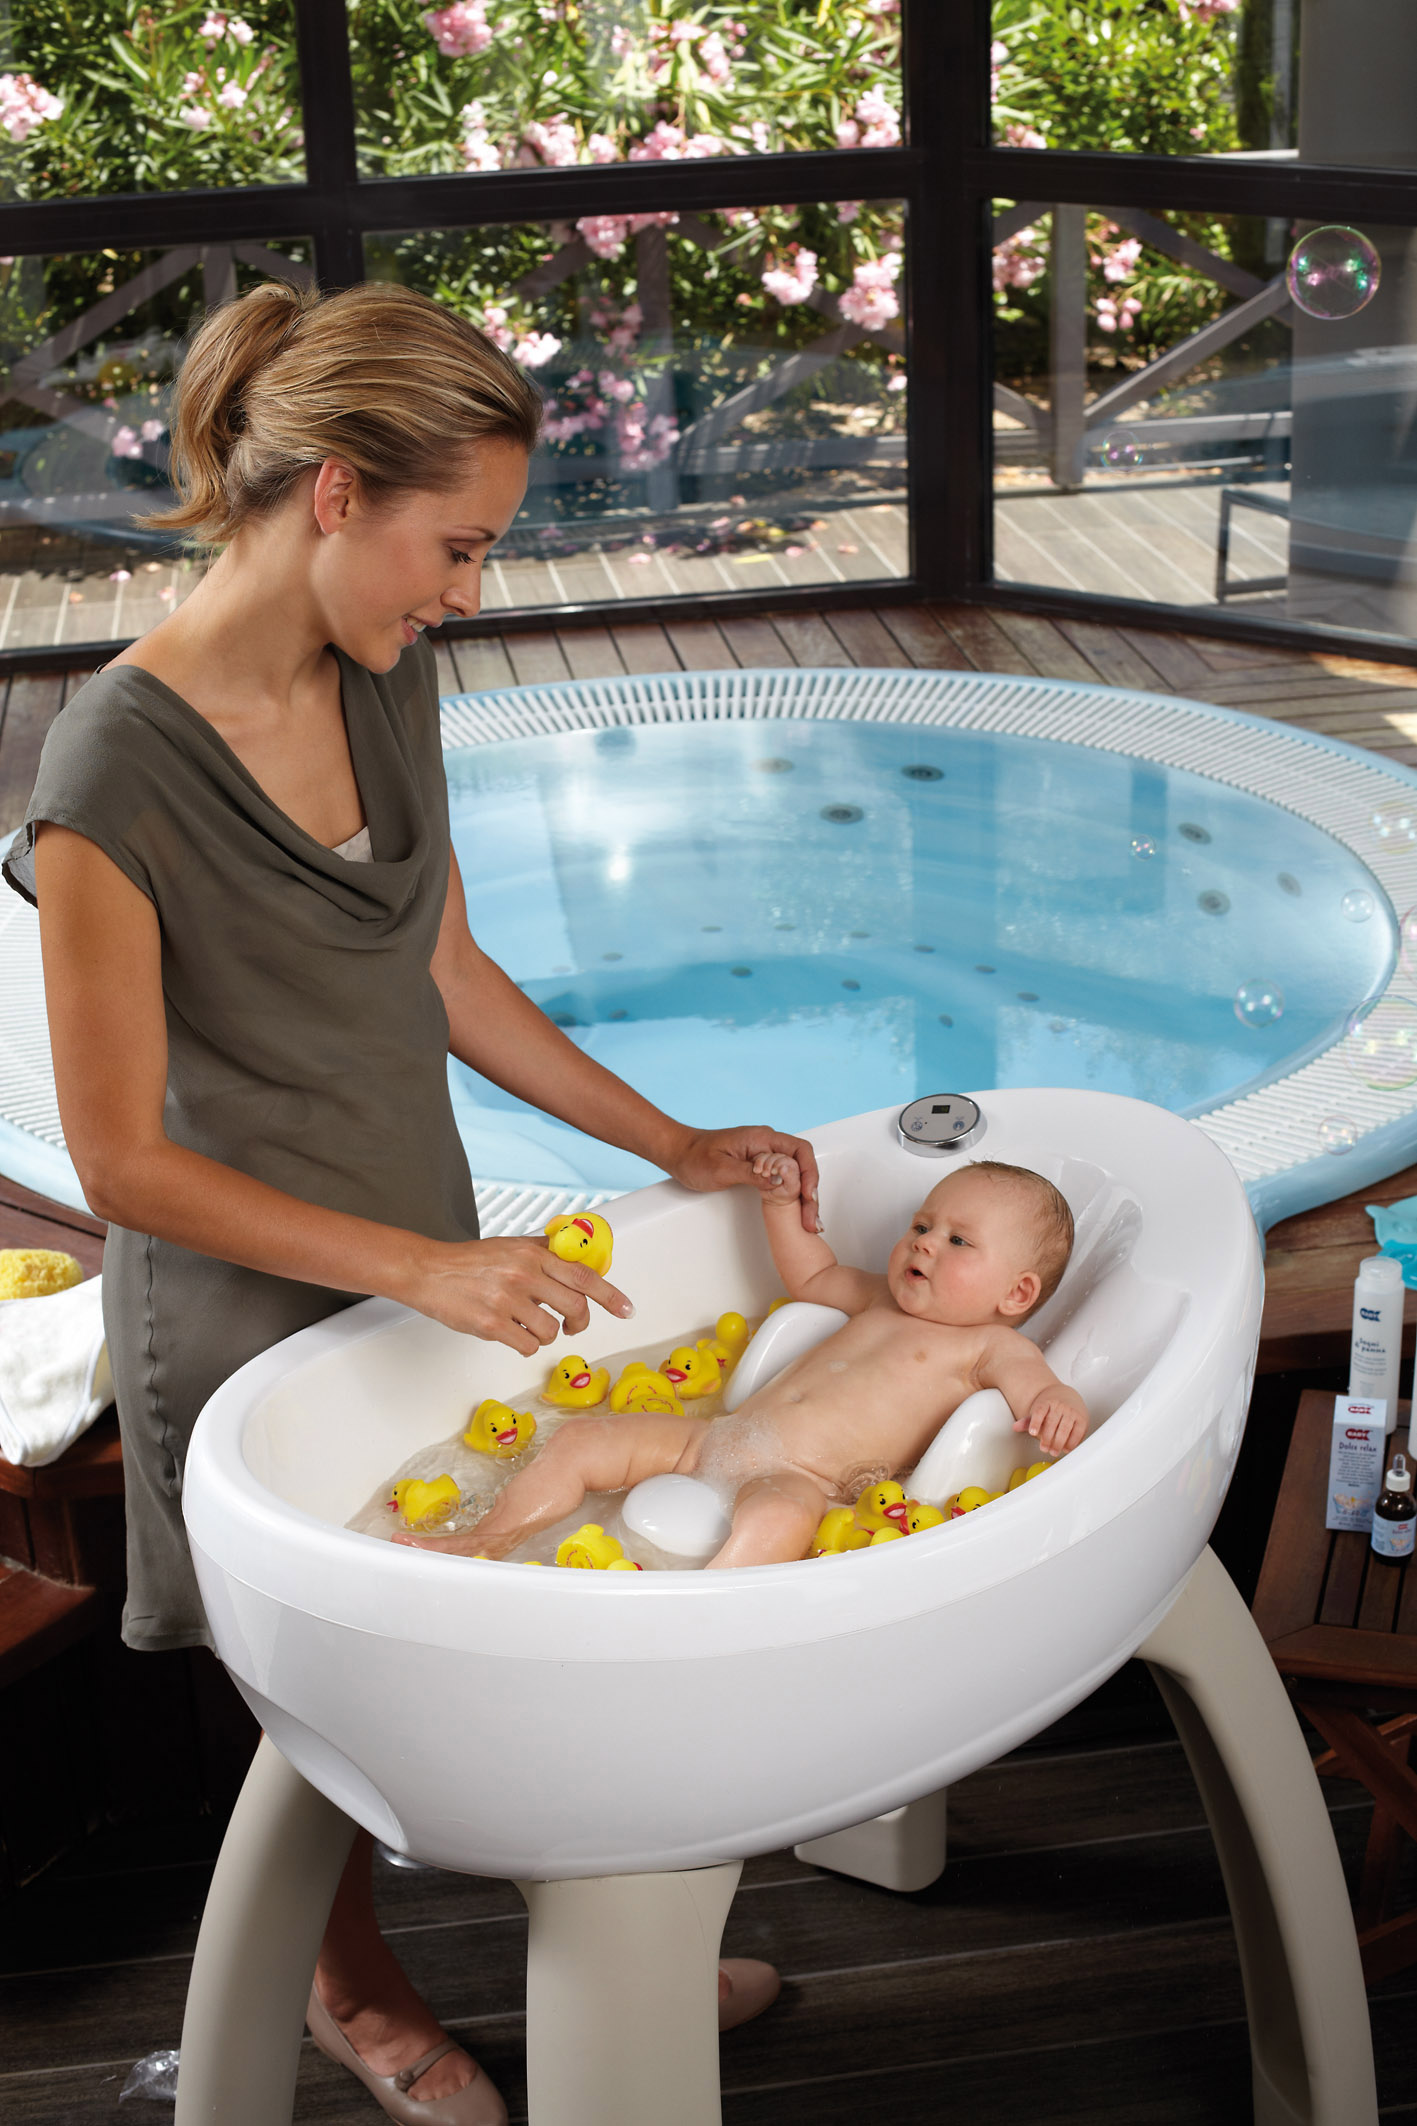 The Magicbath Tub 2 Growing Your Baby